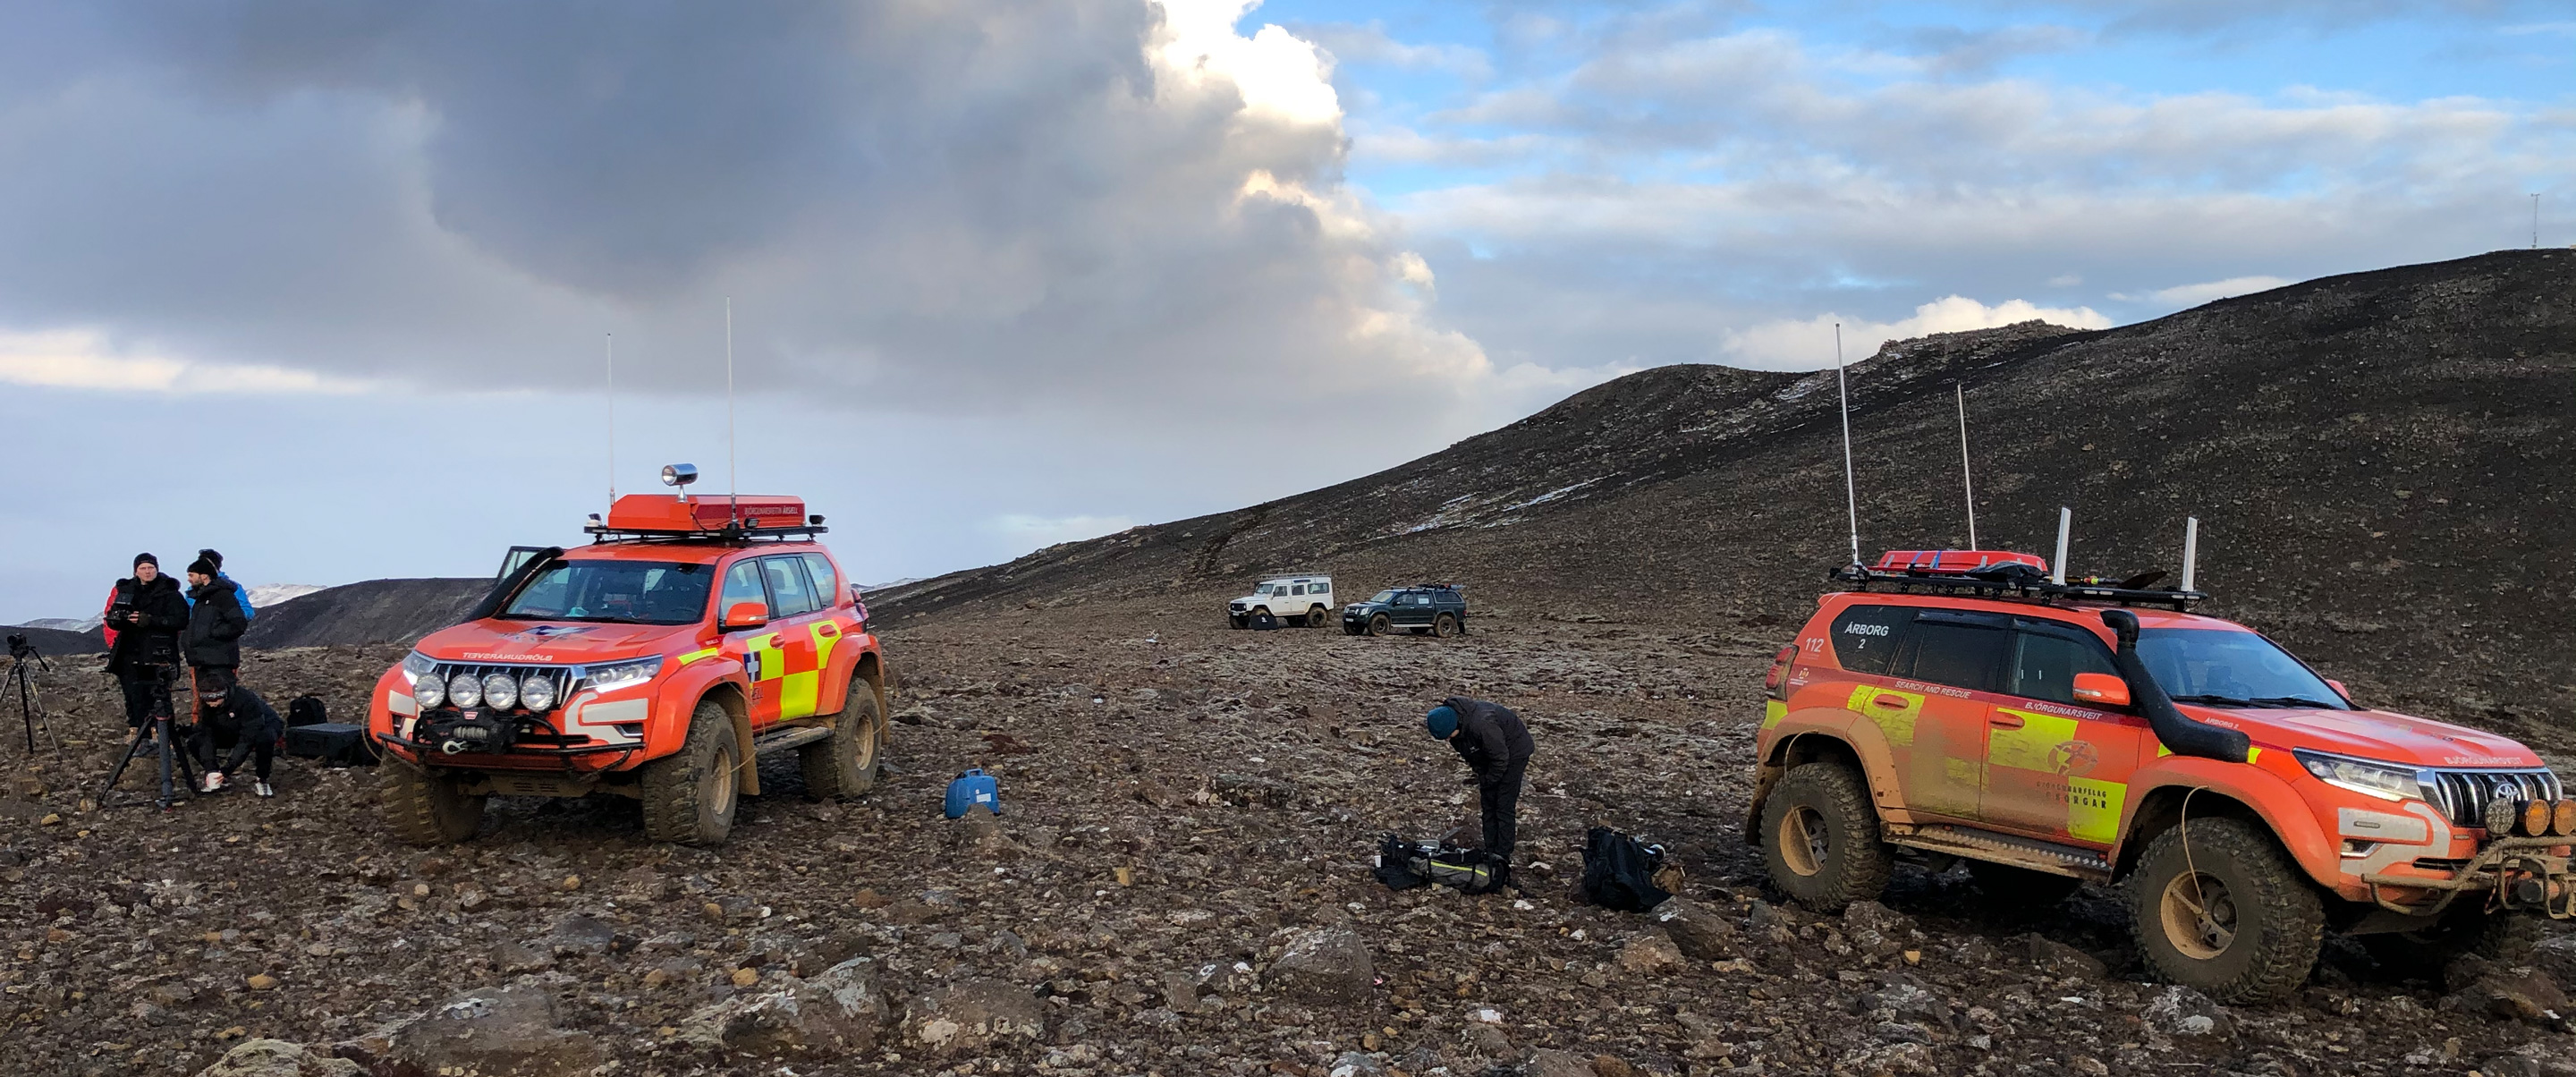 Two bright orange off-road vehicles on a lava field.